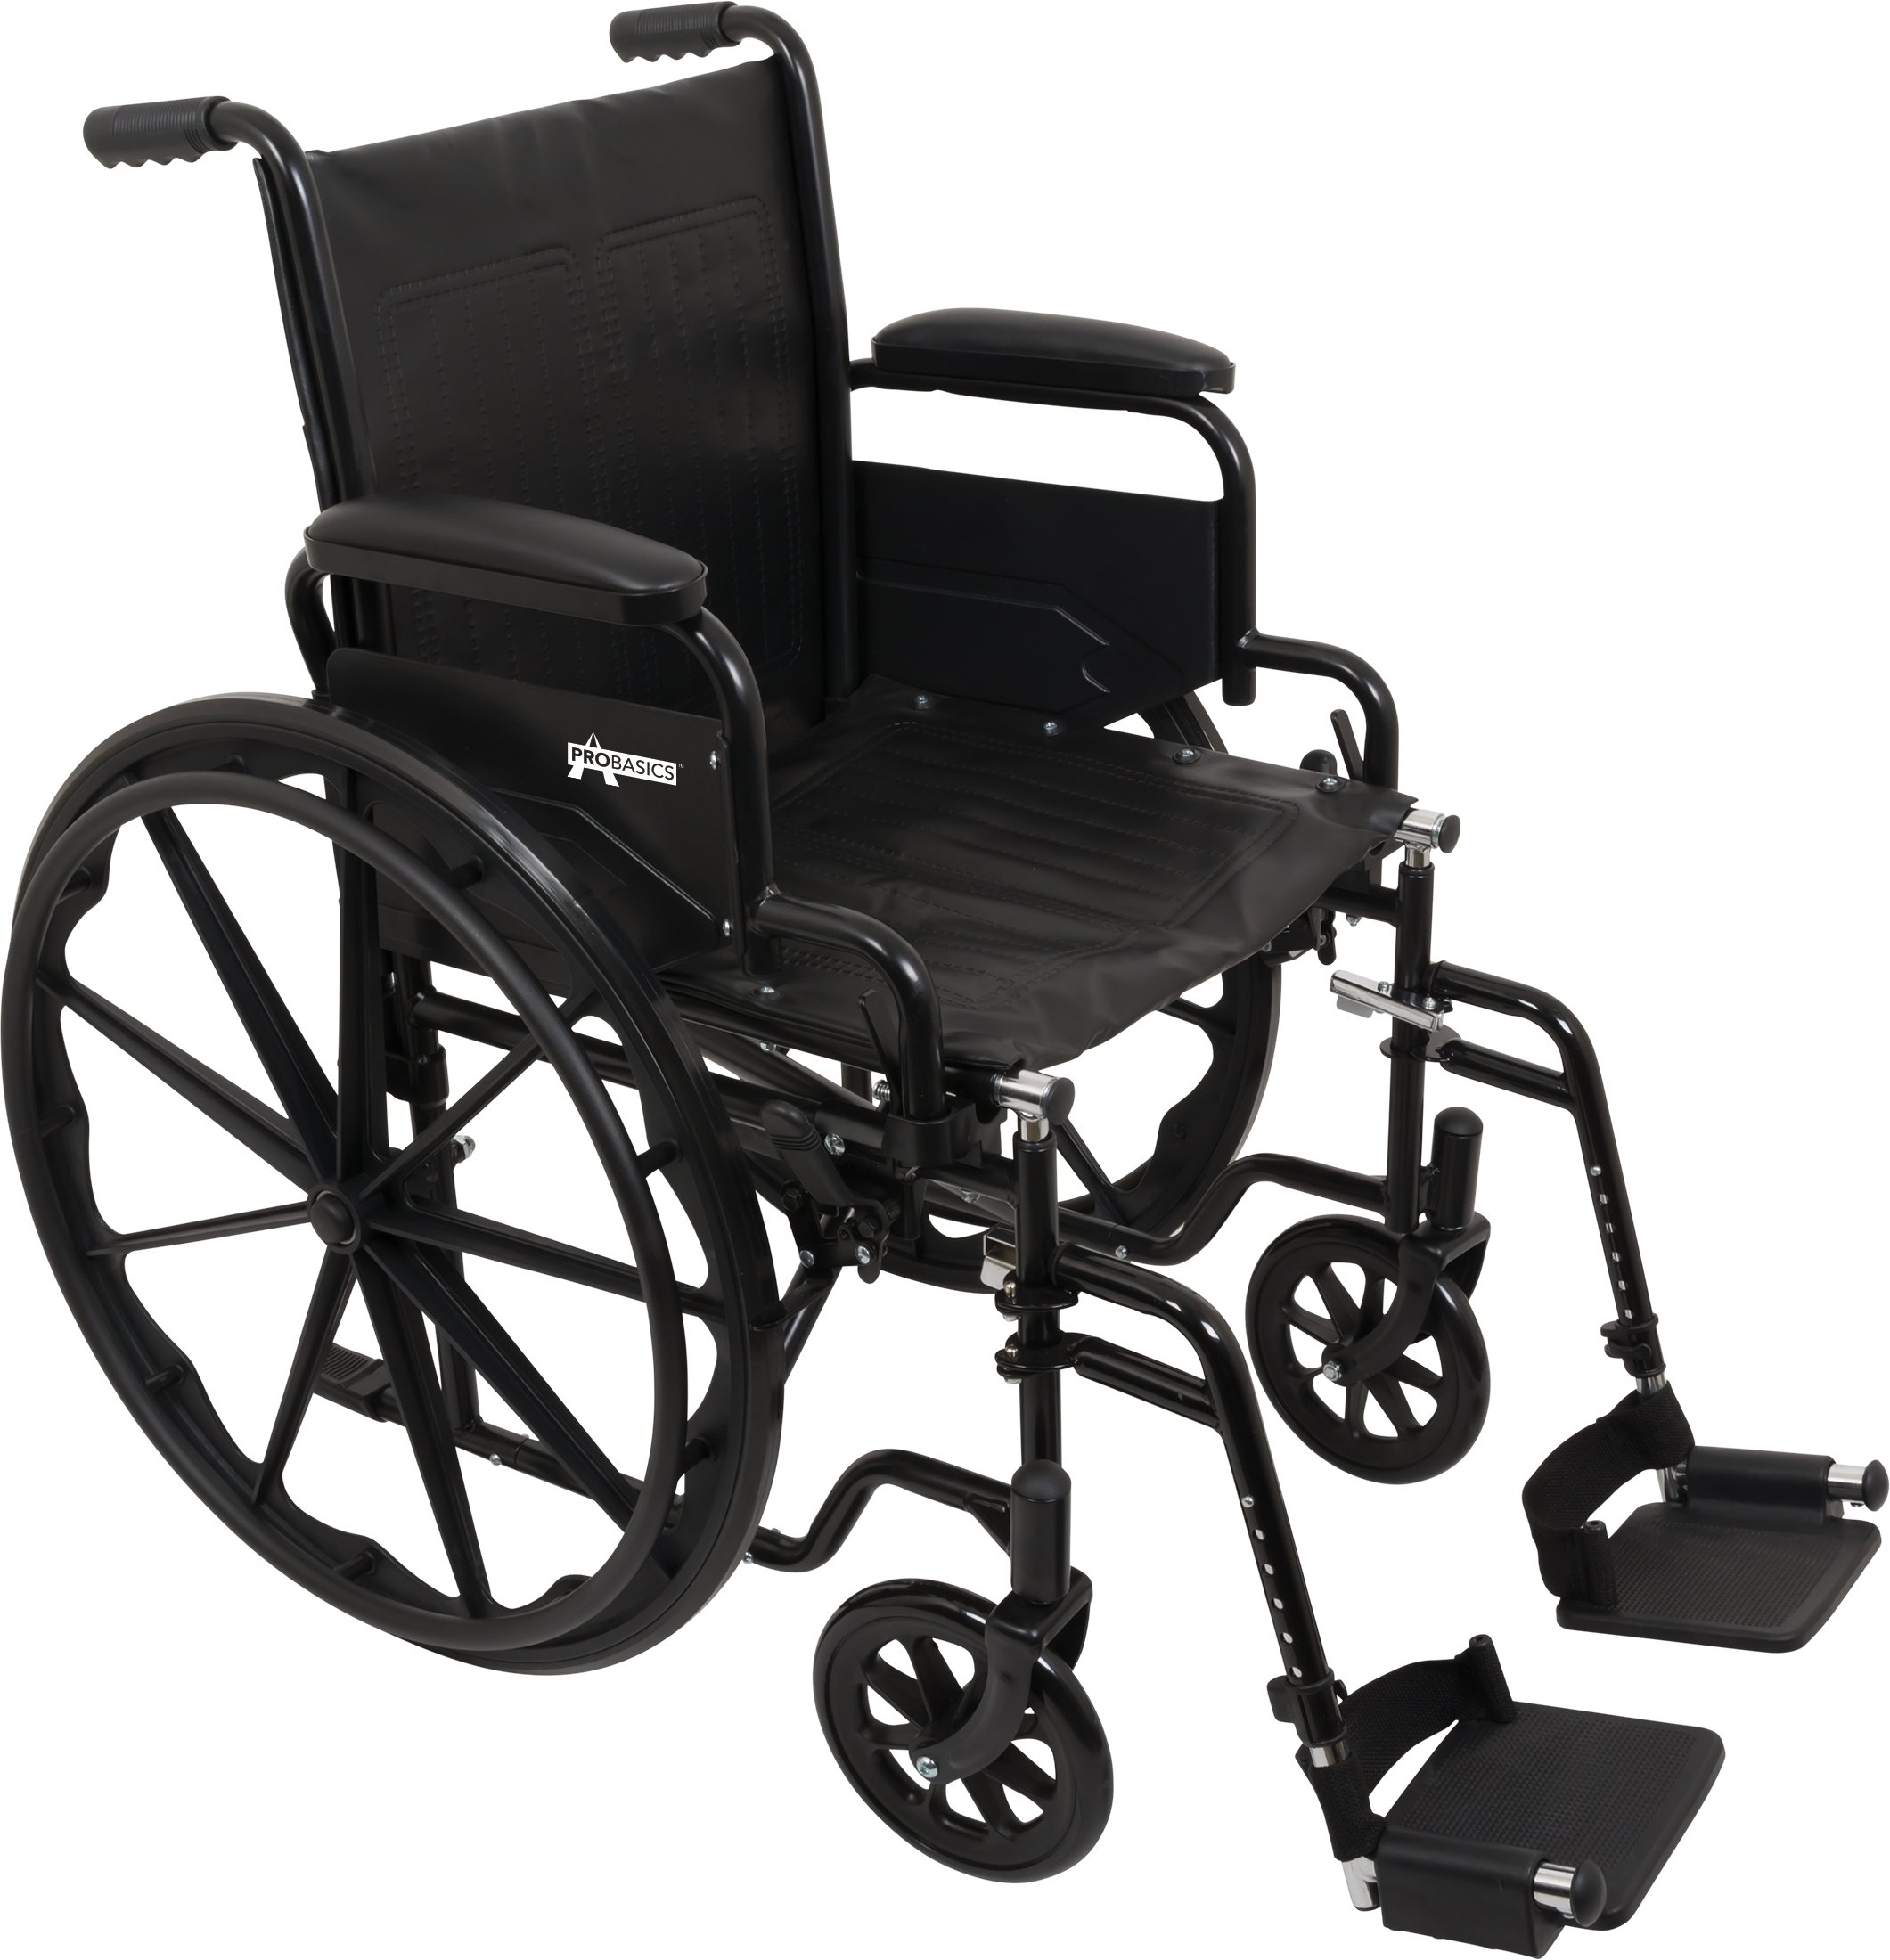 ProBasics Standard Wheelchair - Flip Back Desk Arms - 250 Pound Weight Capacity - Black - Swing-Away Footrest - 16'' x 16'' Seat by Roscoe Medical